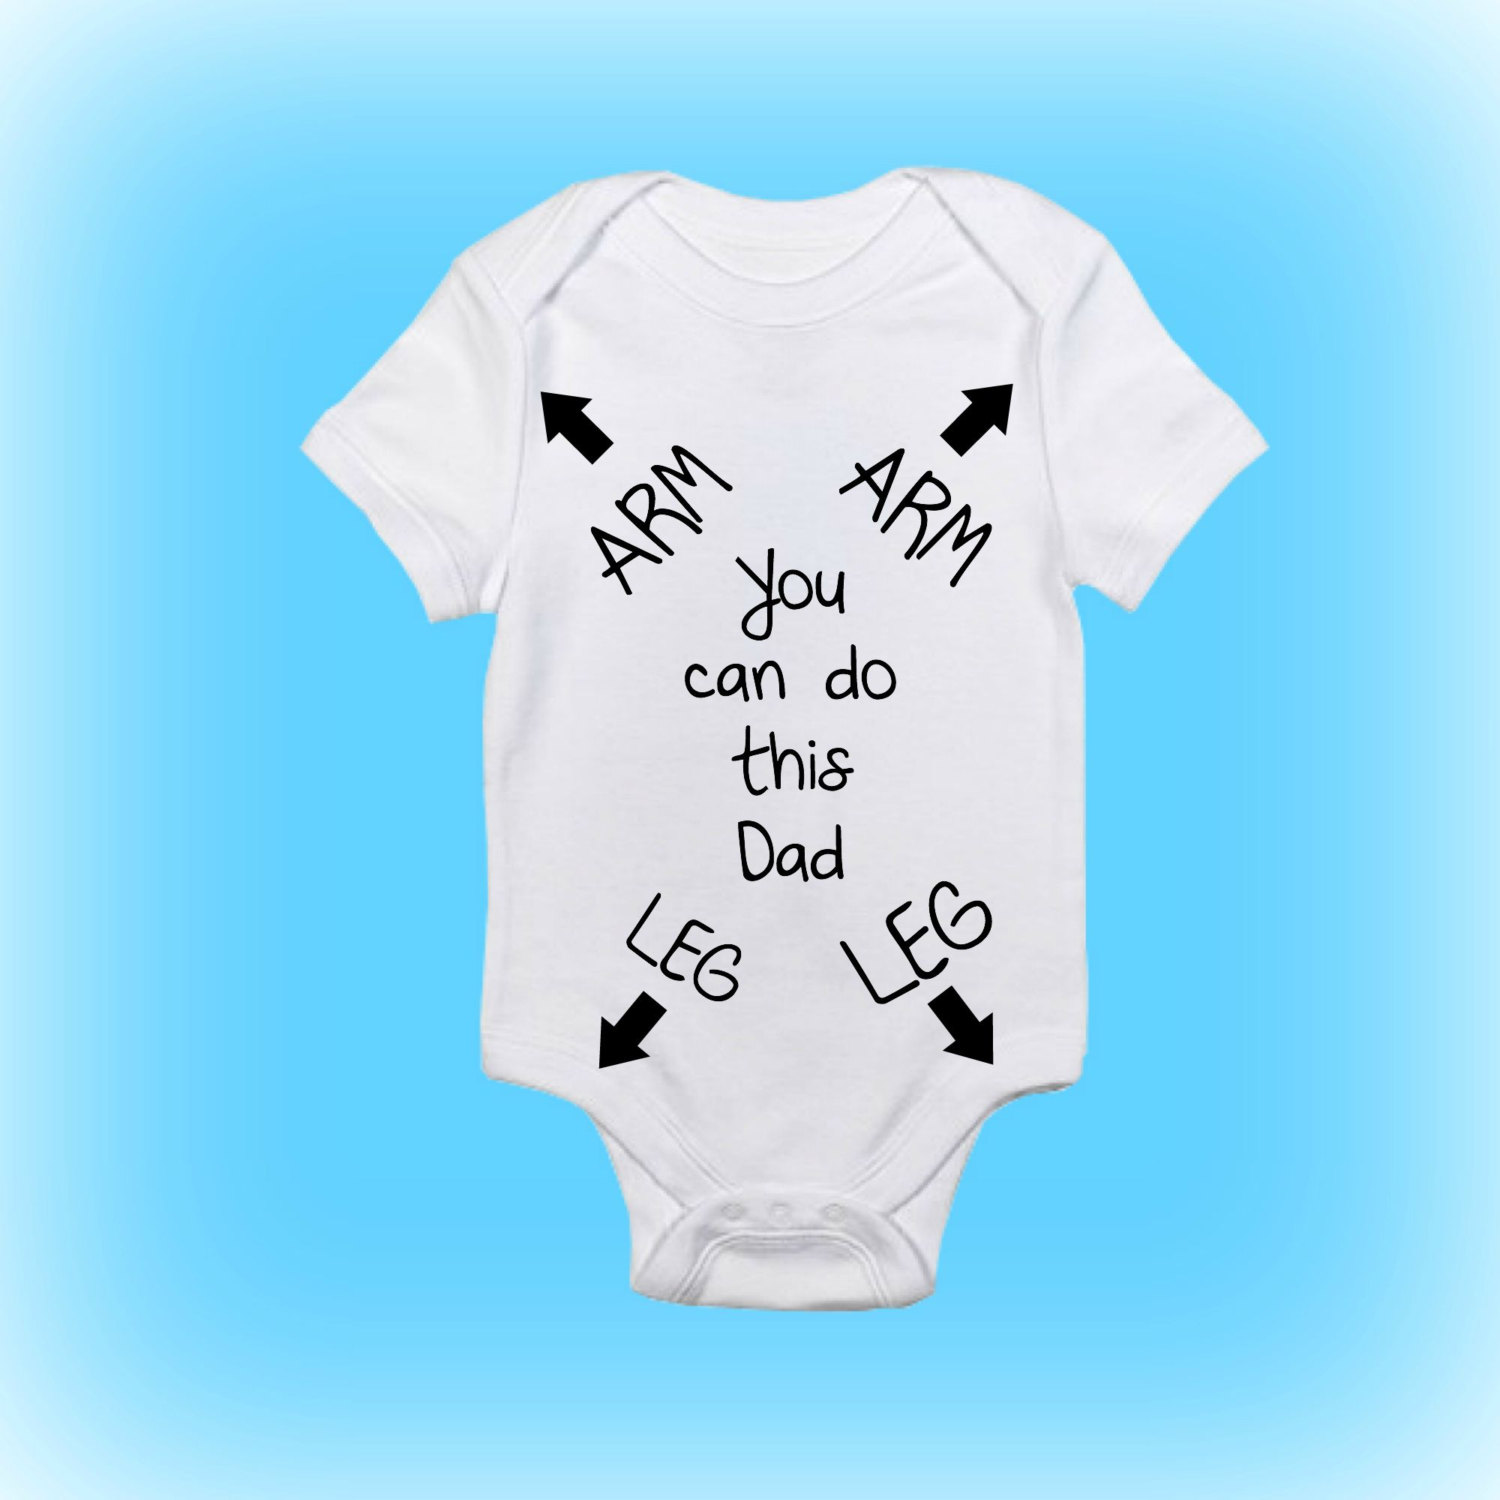 1500x1500 Gift For New Daddy Funny Baby Daddy Gift Baby Gift